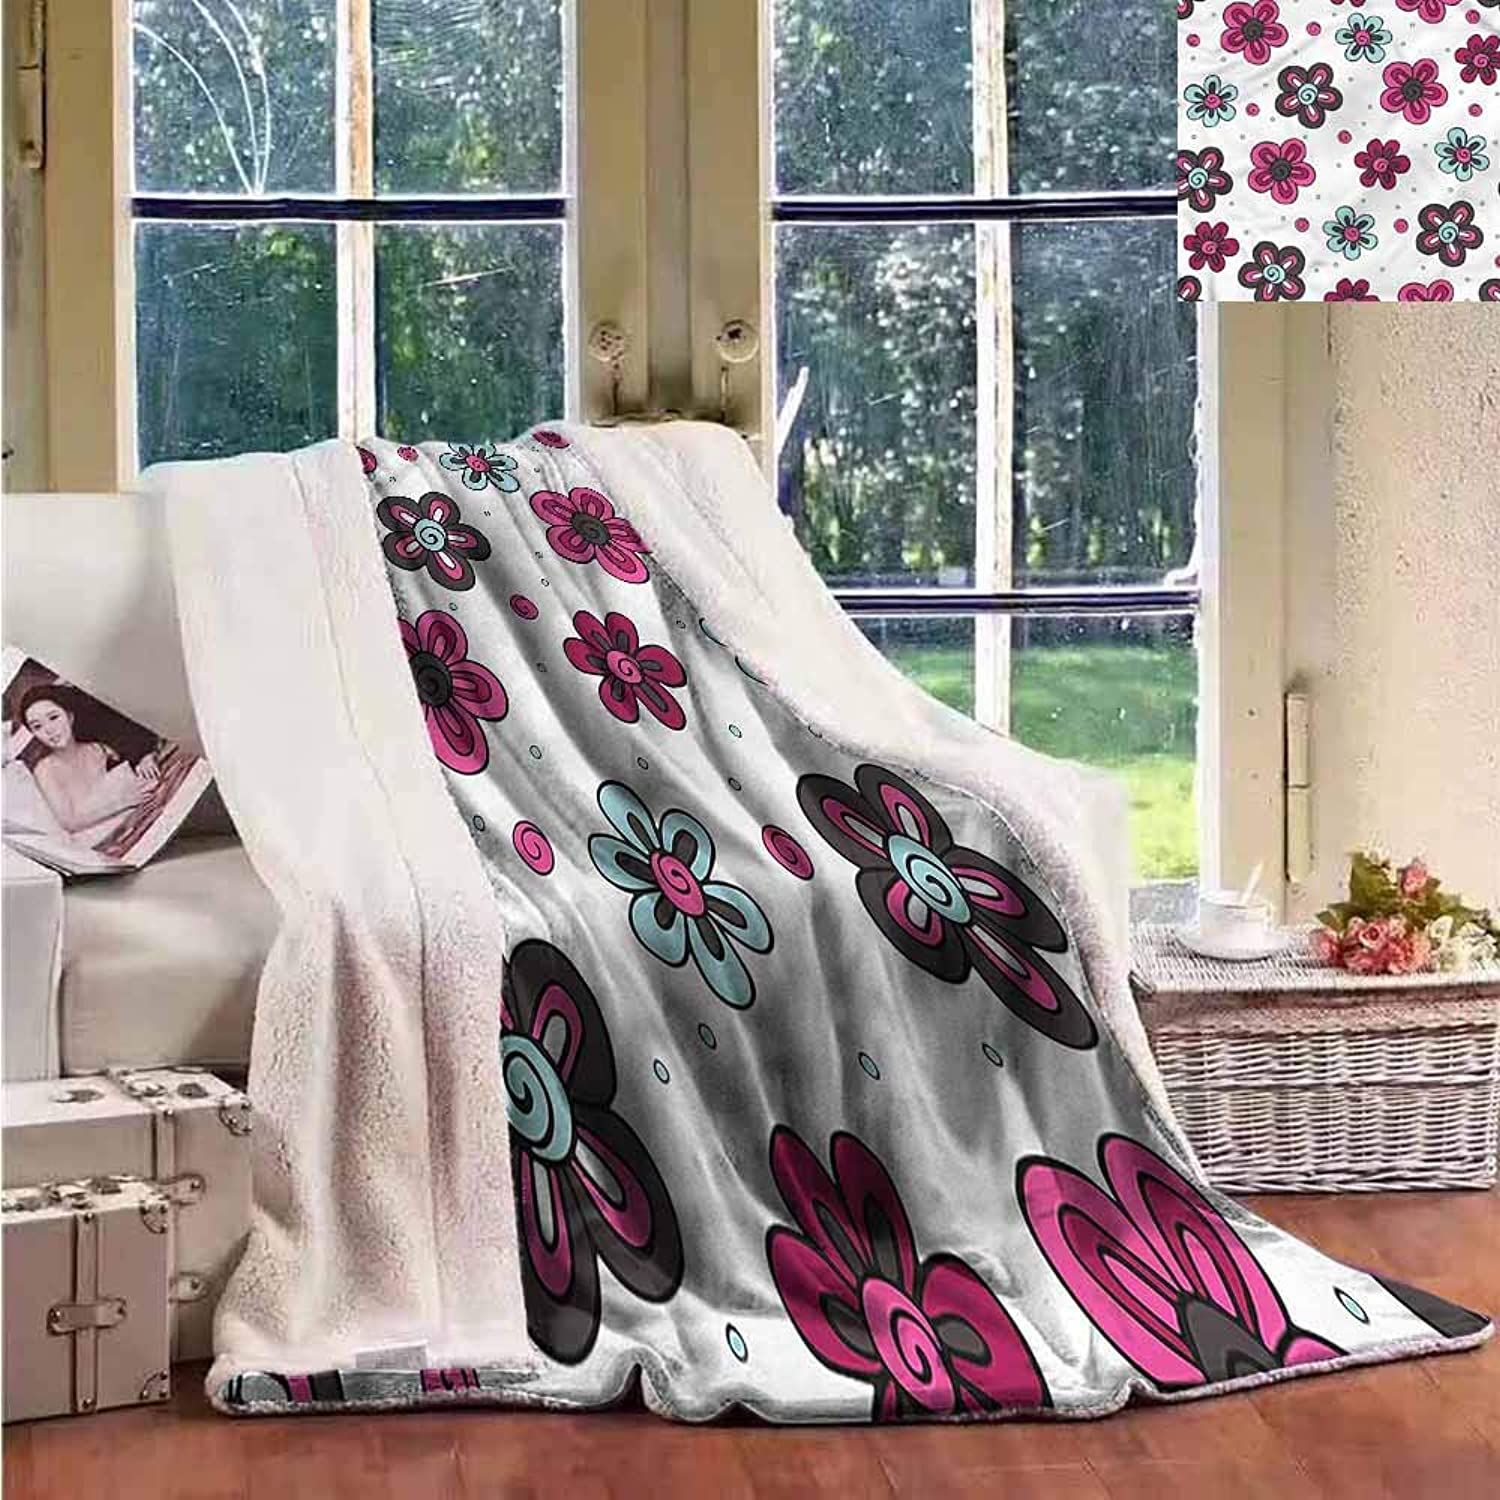 Sunnyhome Sherpa Throw Blanket Floral Florets Buds Kids Girls Upgraded Thick Lazy Blanket W59x31L